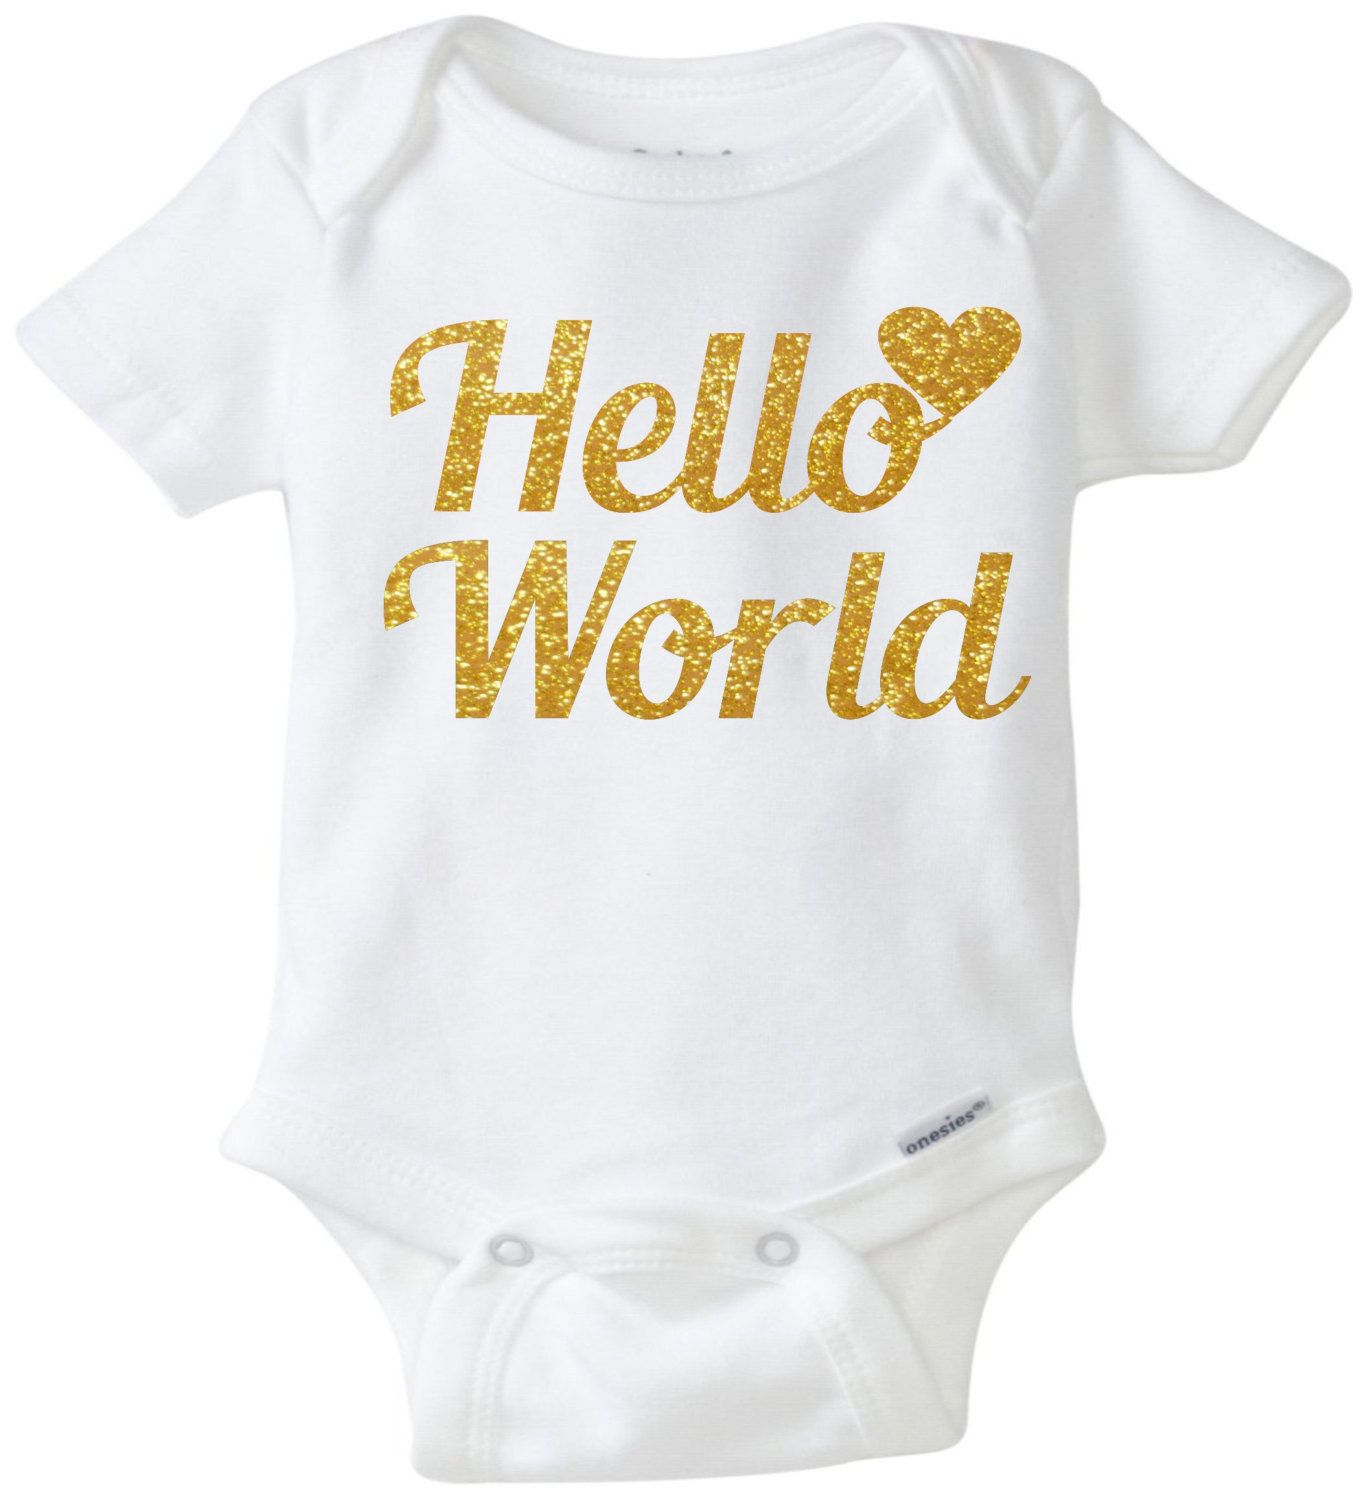 23a46d71 Hello world onesie baby onesie glitter shirt baby outfit baby shower gift  coming home outfit unisex baby clothing sparkle by mkclassyprints on Etsy